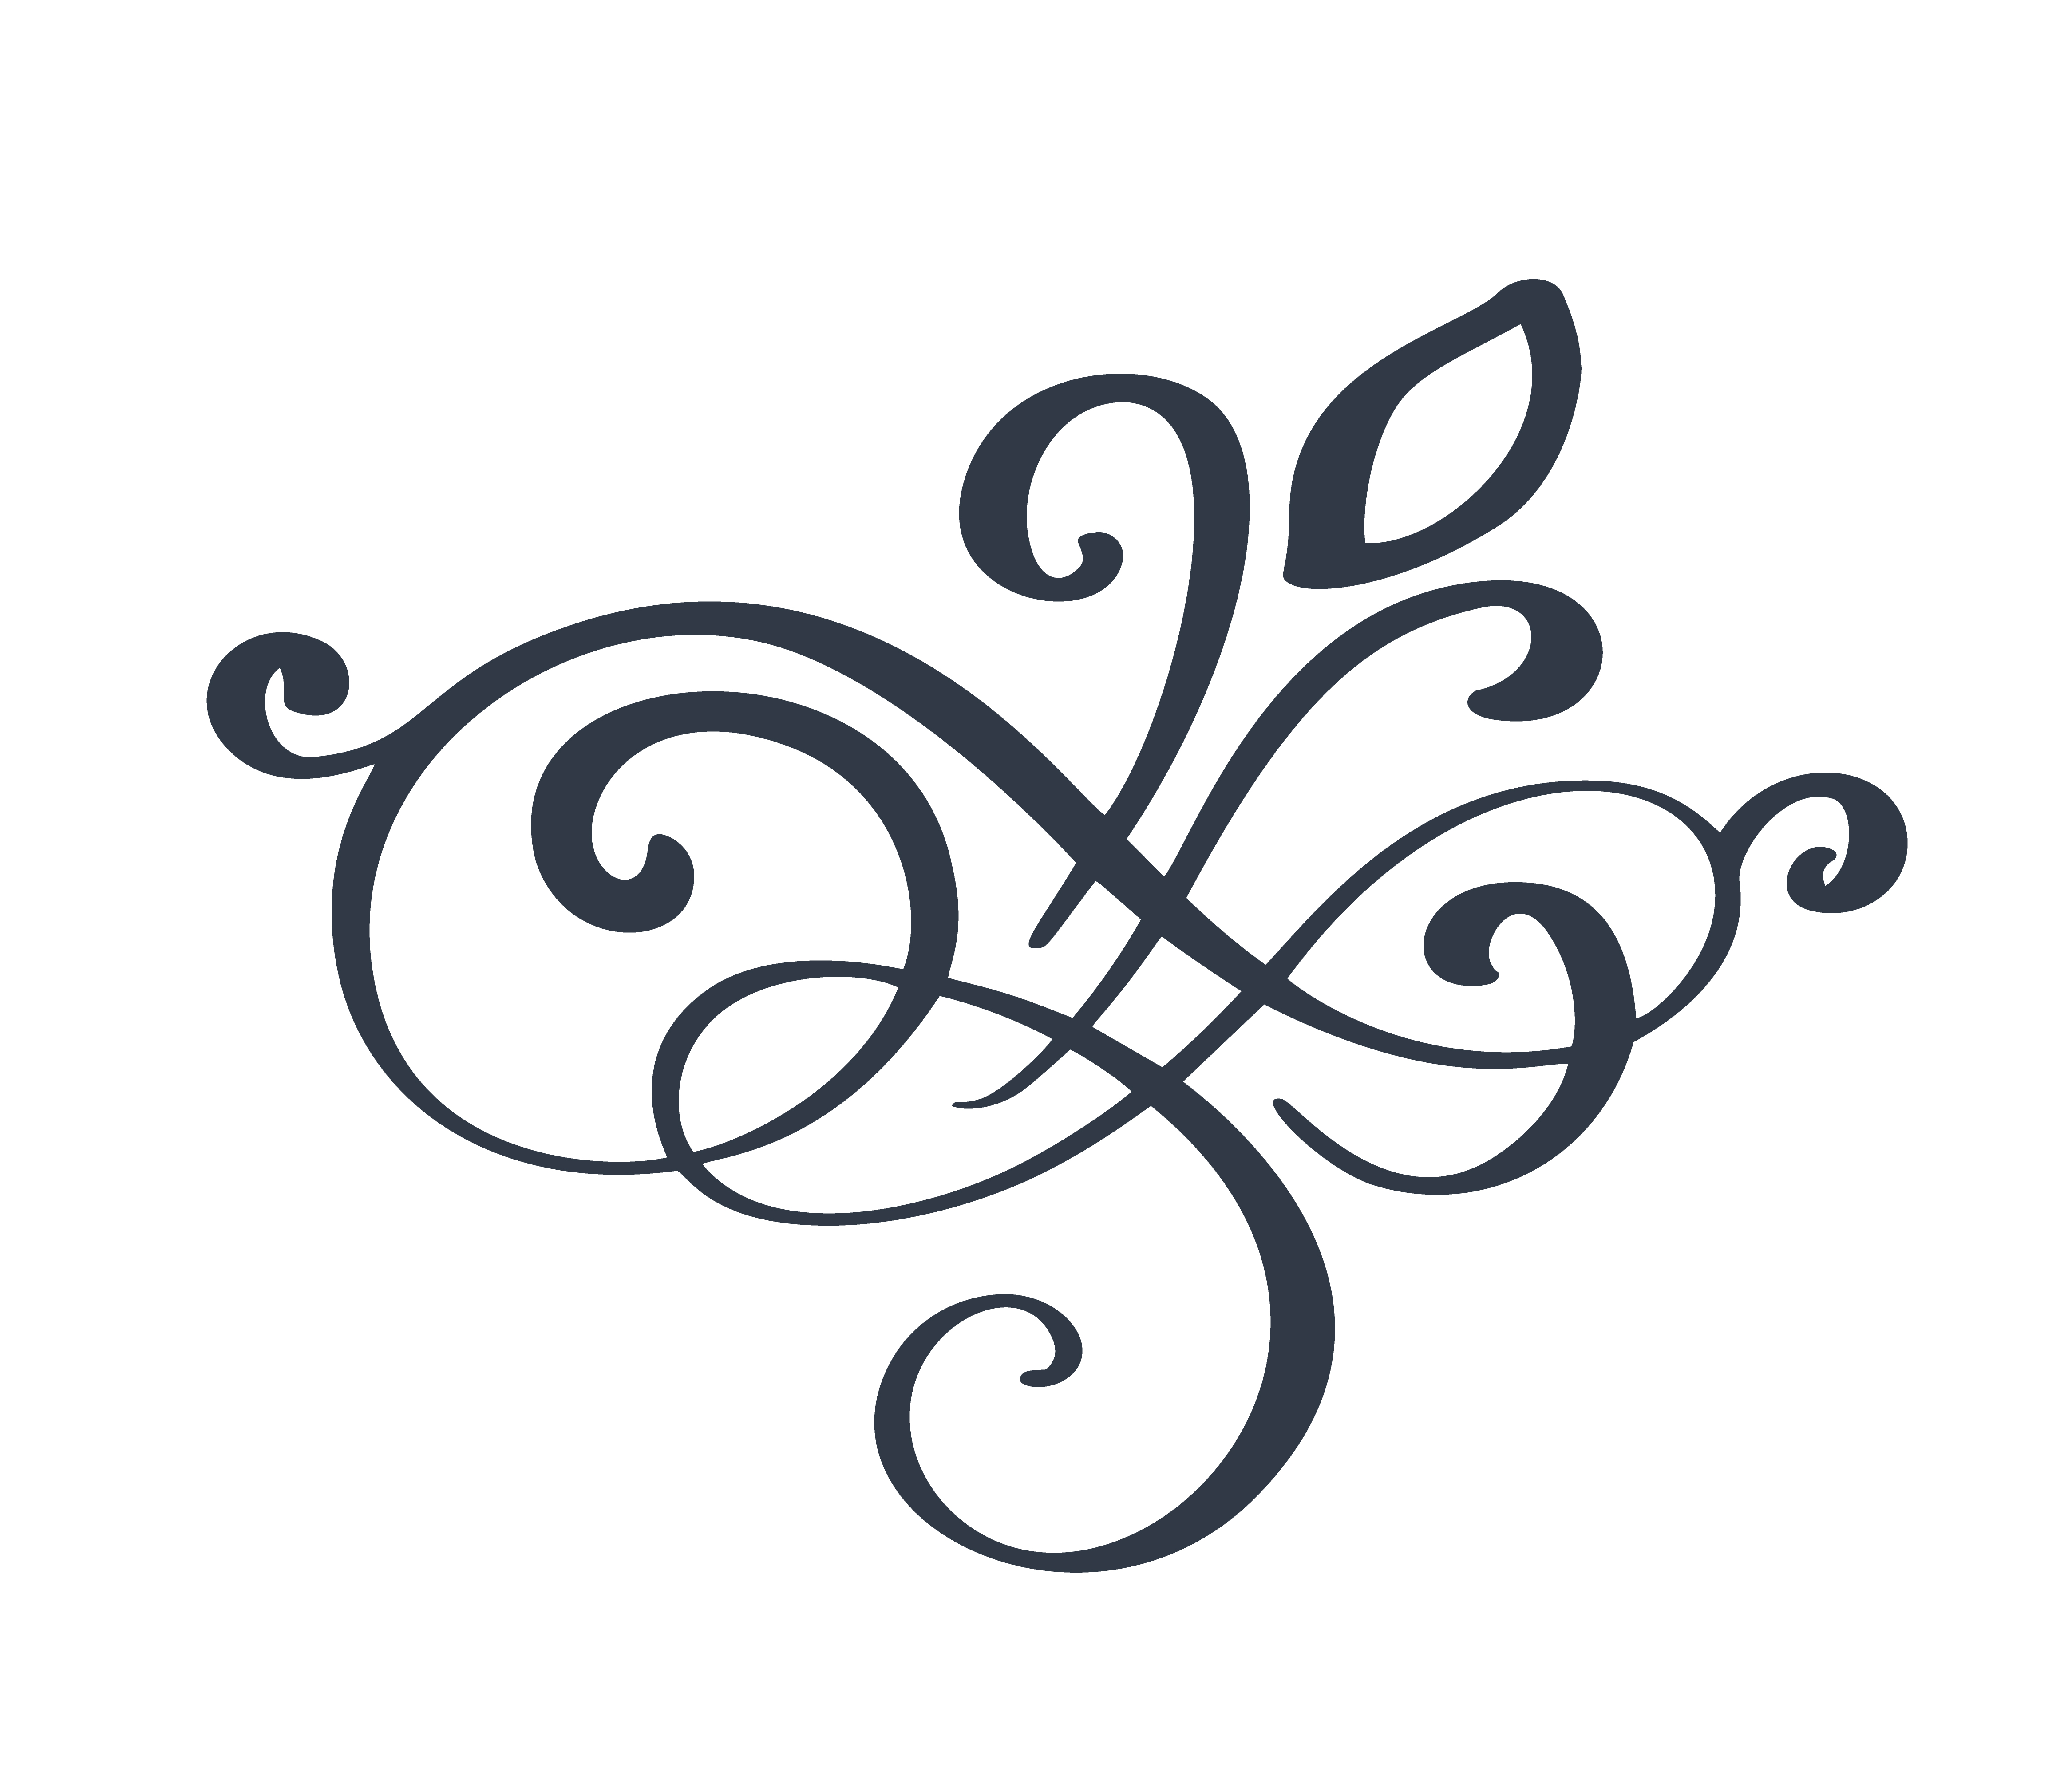 flourish swirl ornate decoration for pointed pen ink